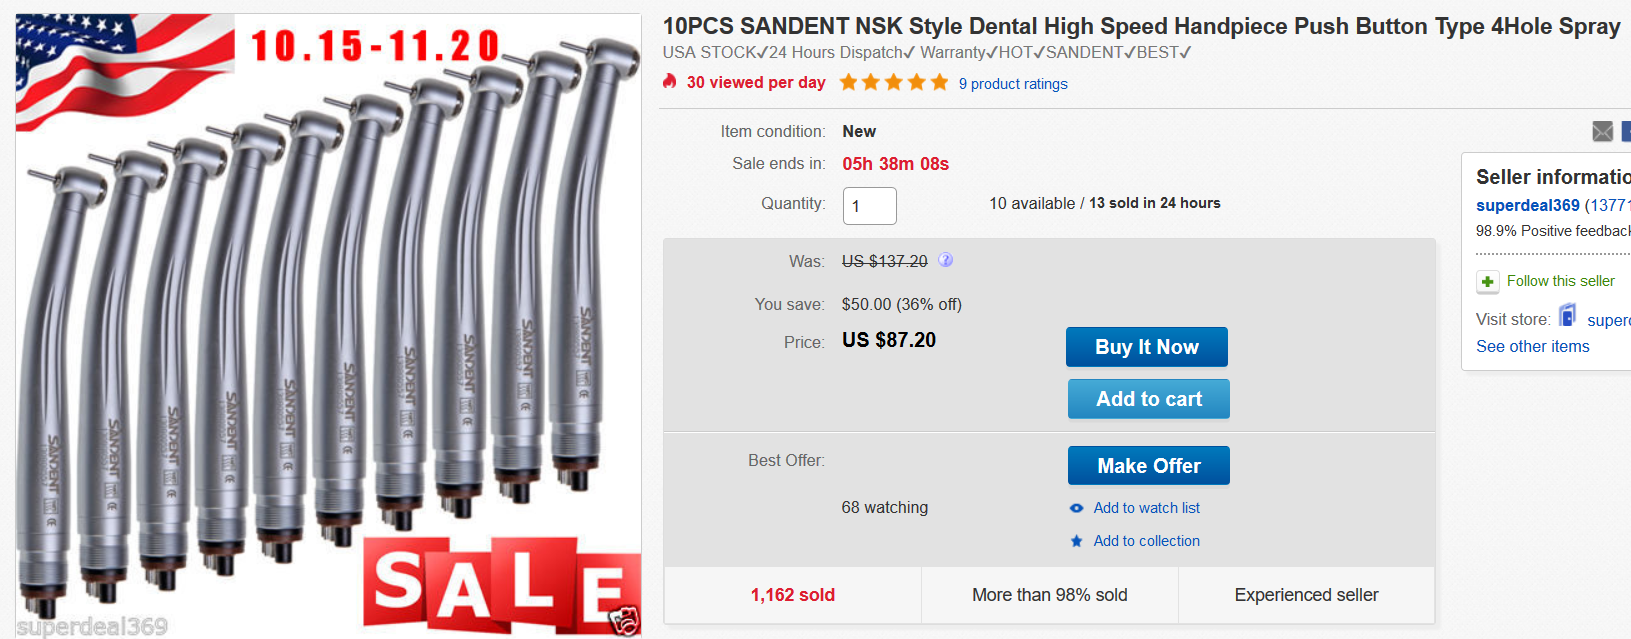 Image of cheap but potentially unsafe dental equipment